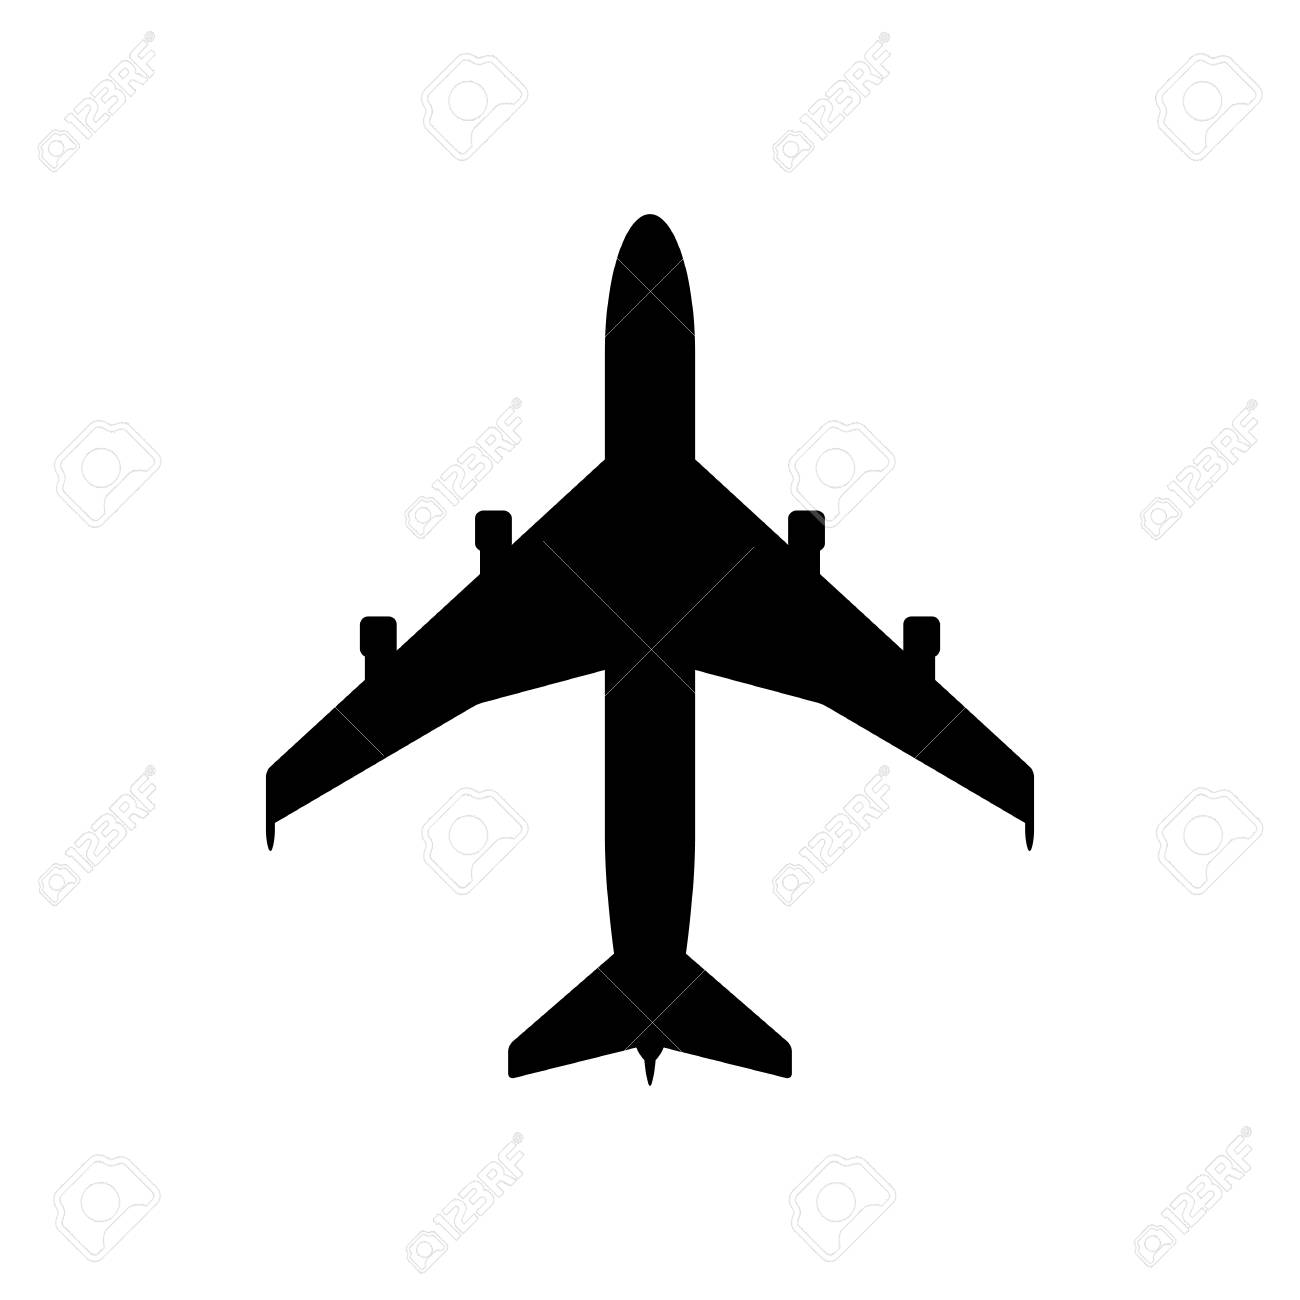 Airplane Icon Black Icon Isolated On White Background Airplane